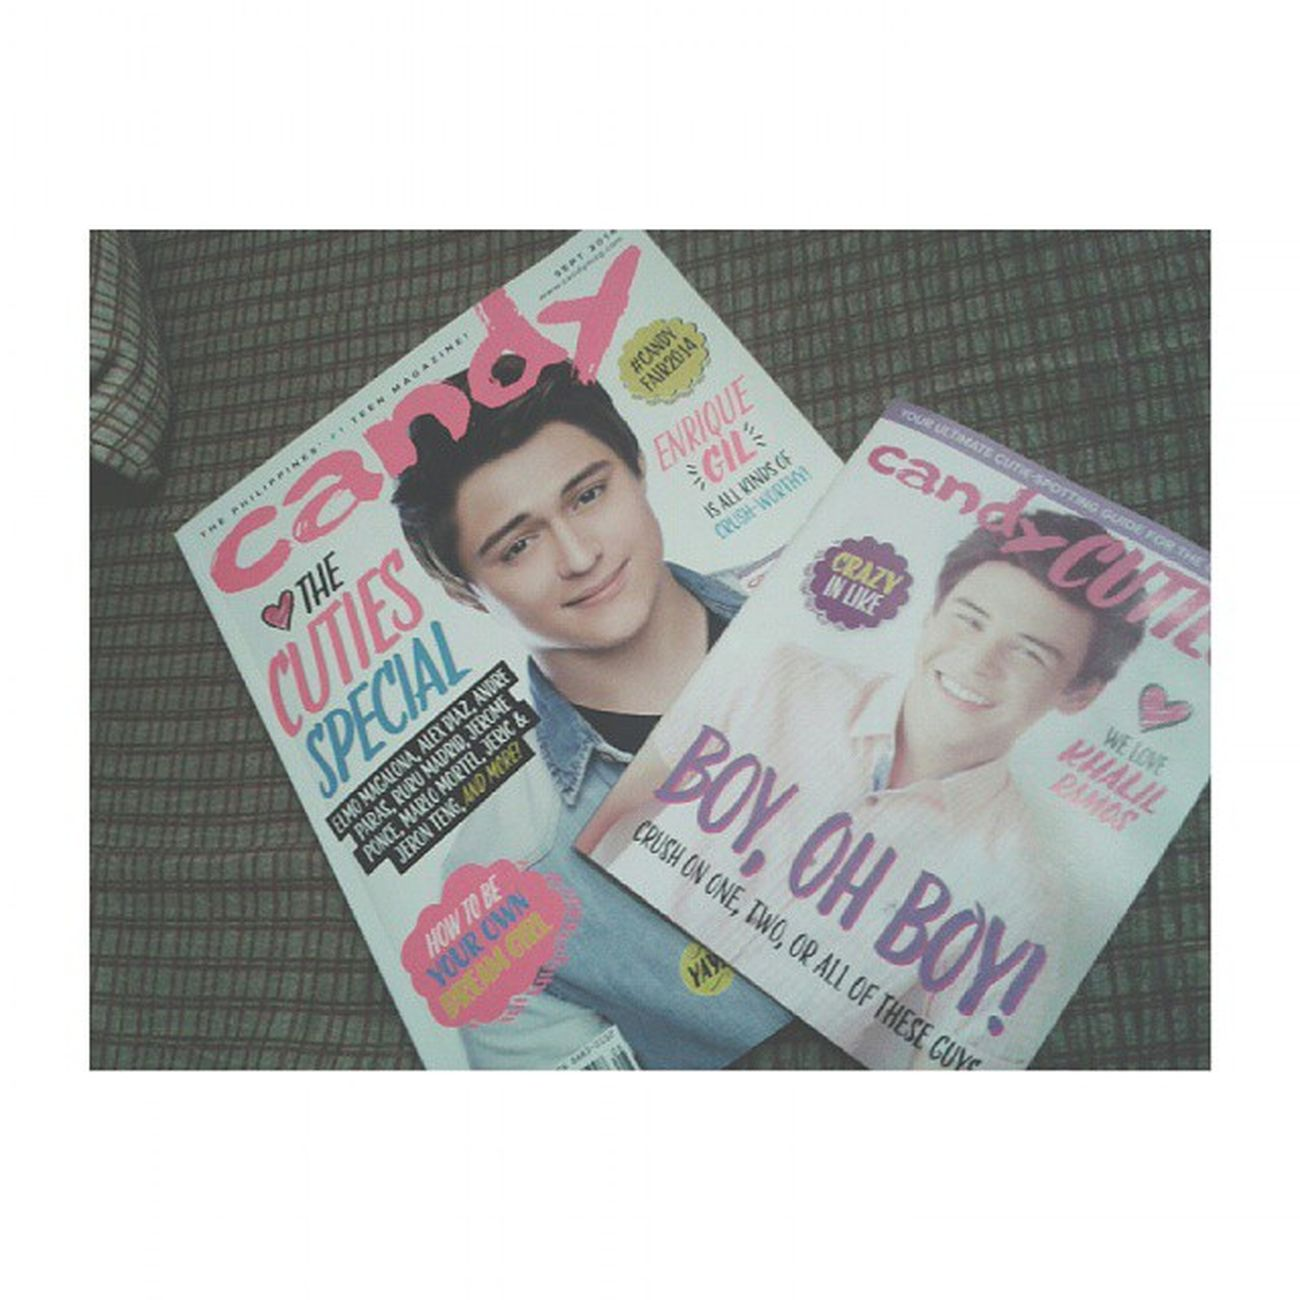 Ohhhyessss!!!!! ?❤❤❤ Happykid CandyMagazine EnriqueGil Khalilramos collection love fangirl